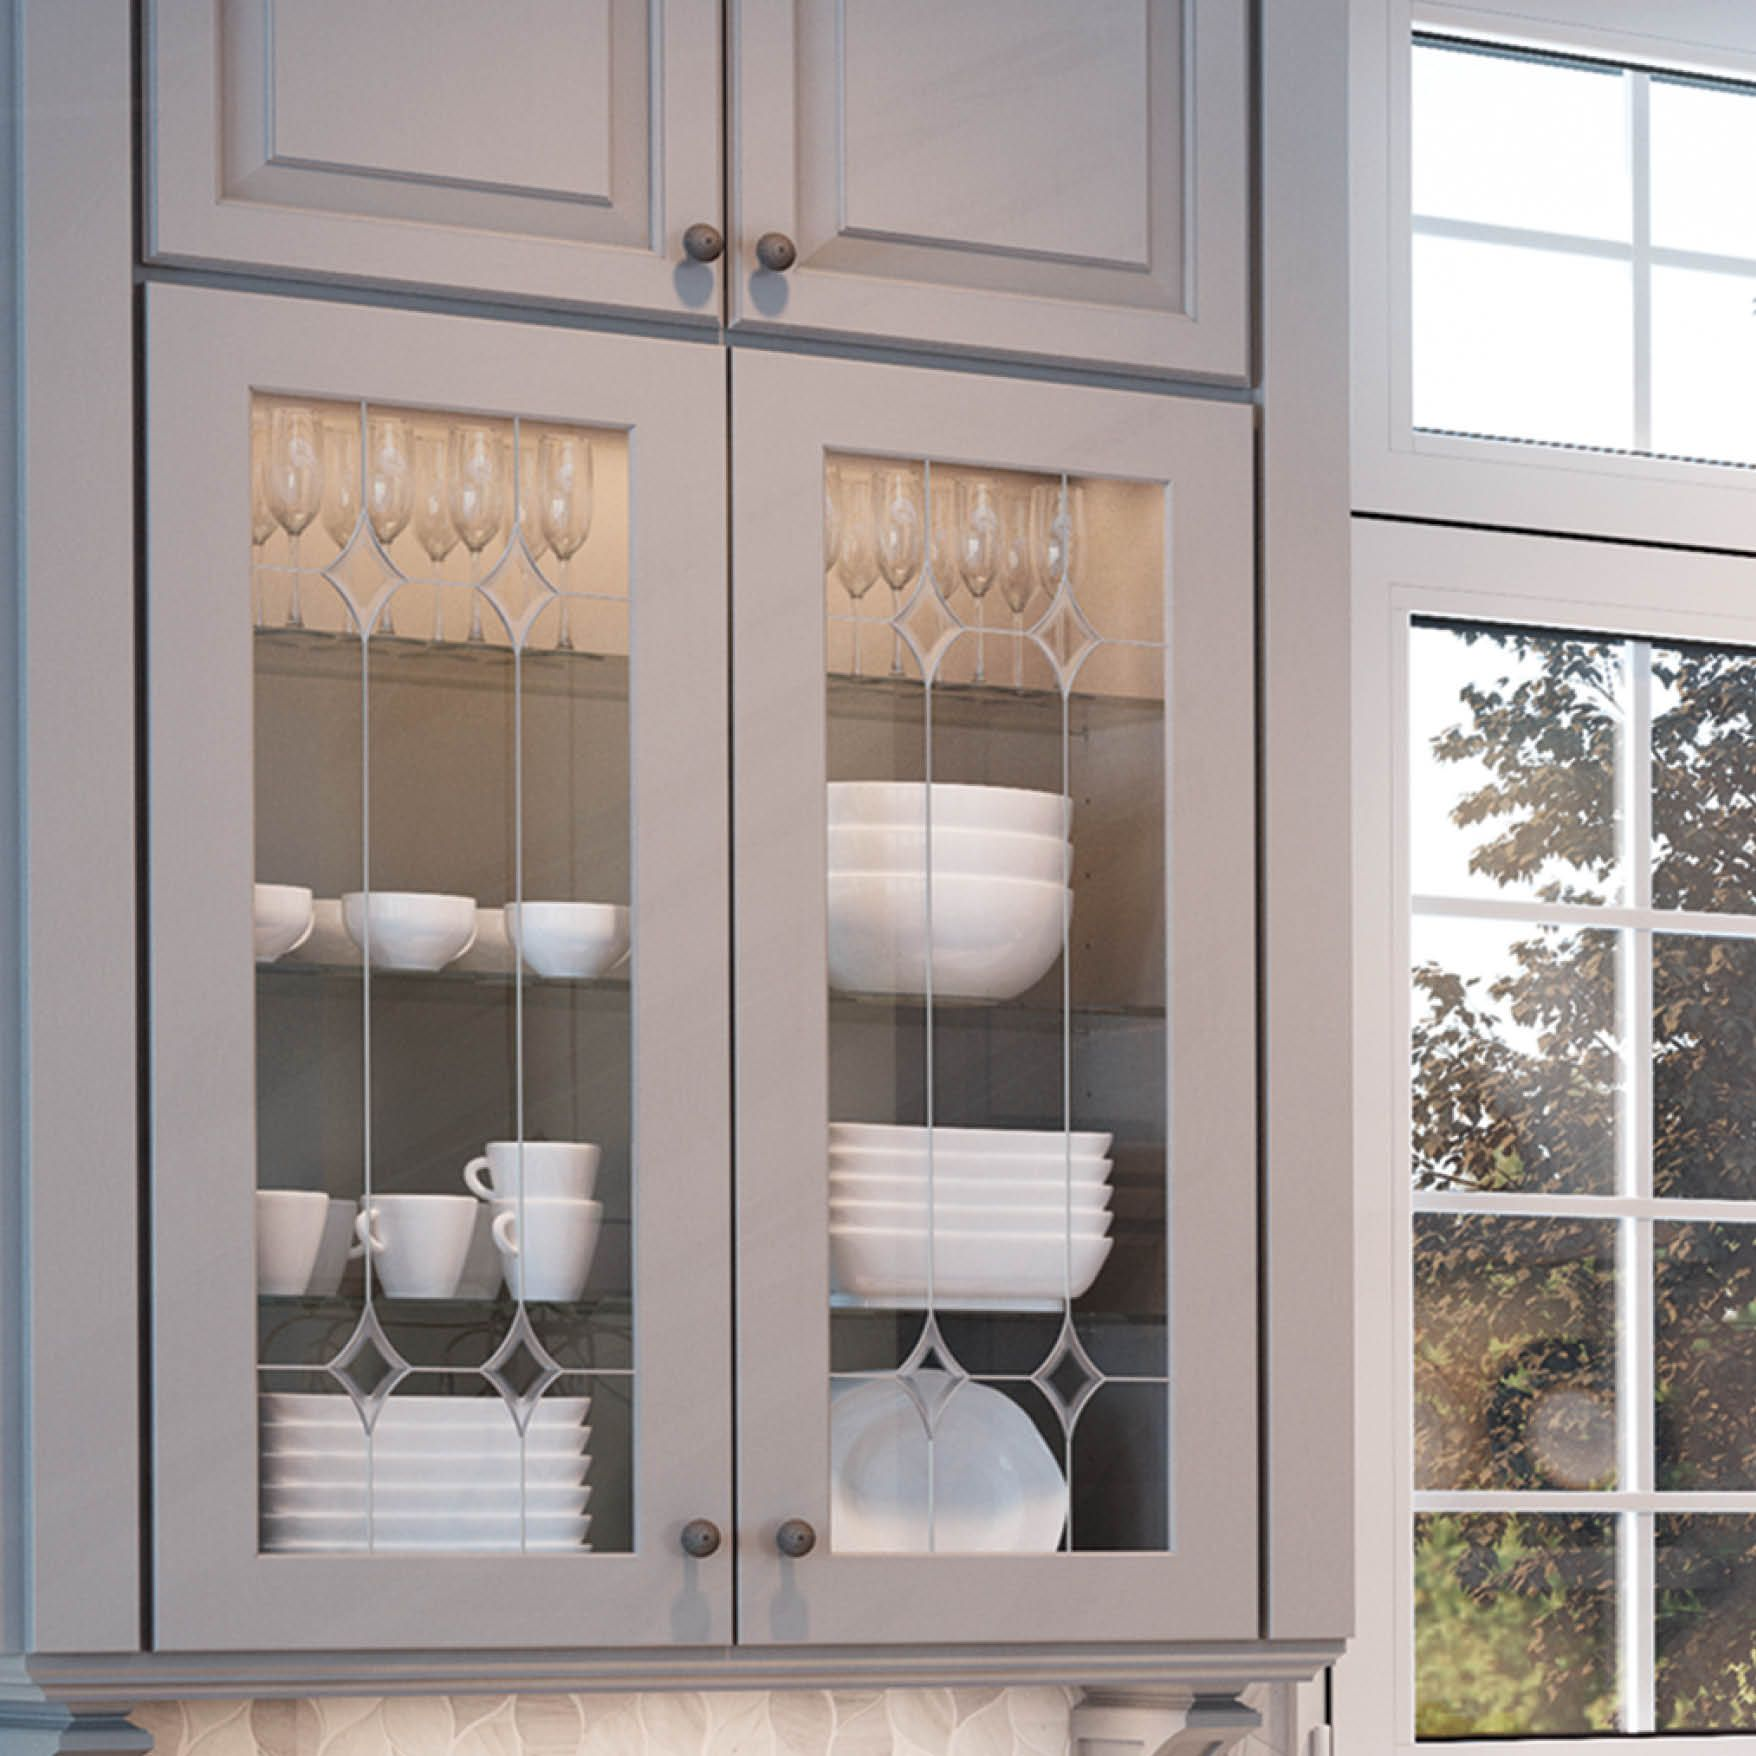 Add A Touch Of Class With Glass We Did Afton Glass Inserts With 610 Painted Stone One O Glass Cabinet Doors Glass Kitchen Cabinet Doors Glass Kitchen Cabinets